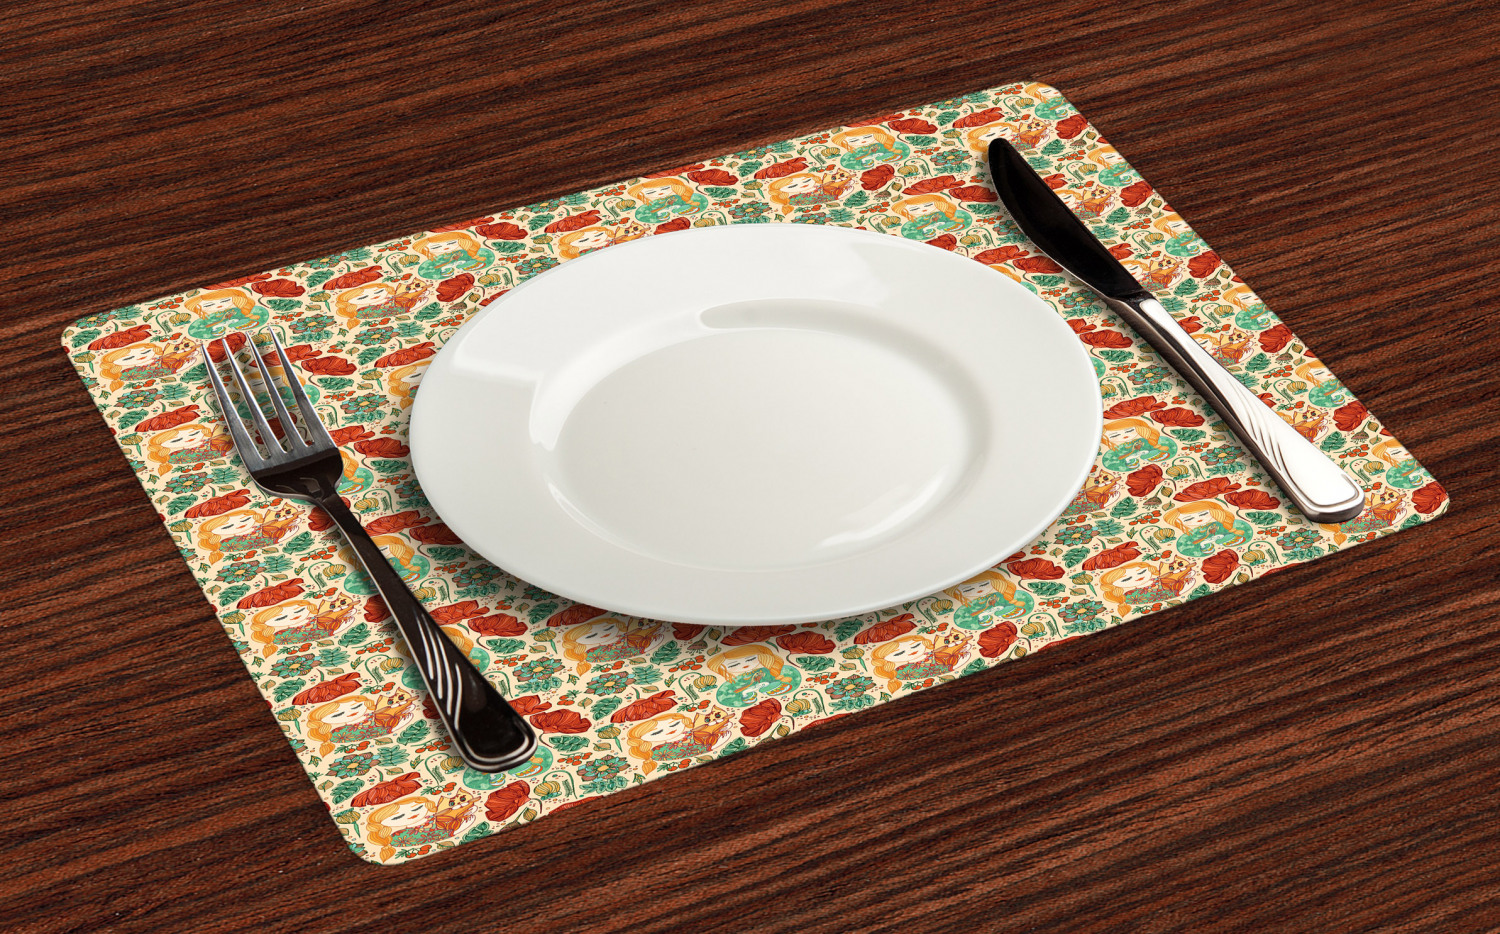 Ambesonne-Flower-Pattern-Placemat-Set-of-4-Fabric-Place-Mats-for-Table-Decor thumbnail 121